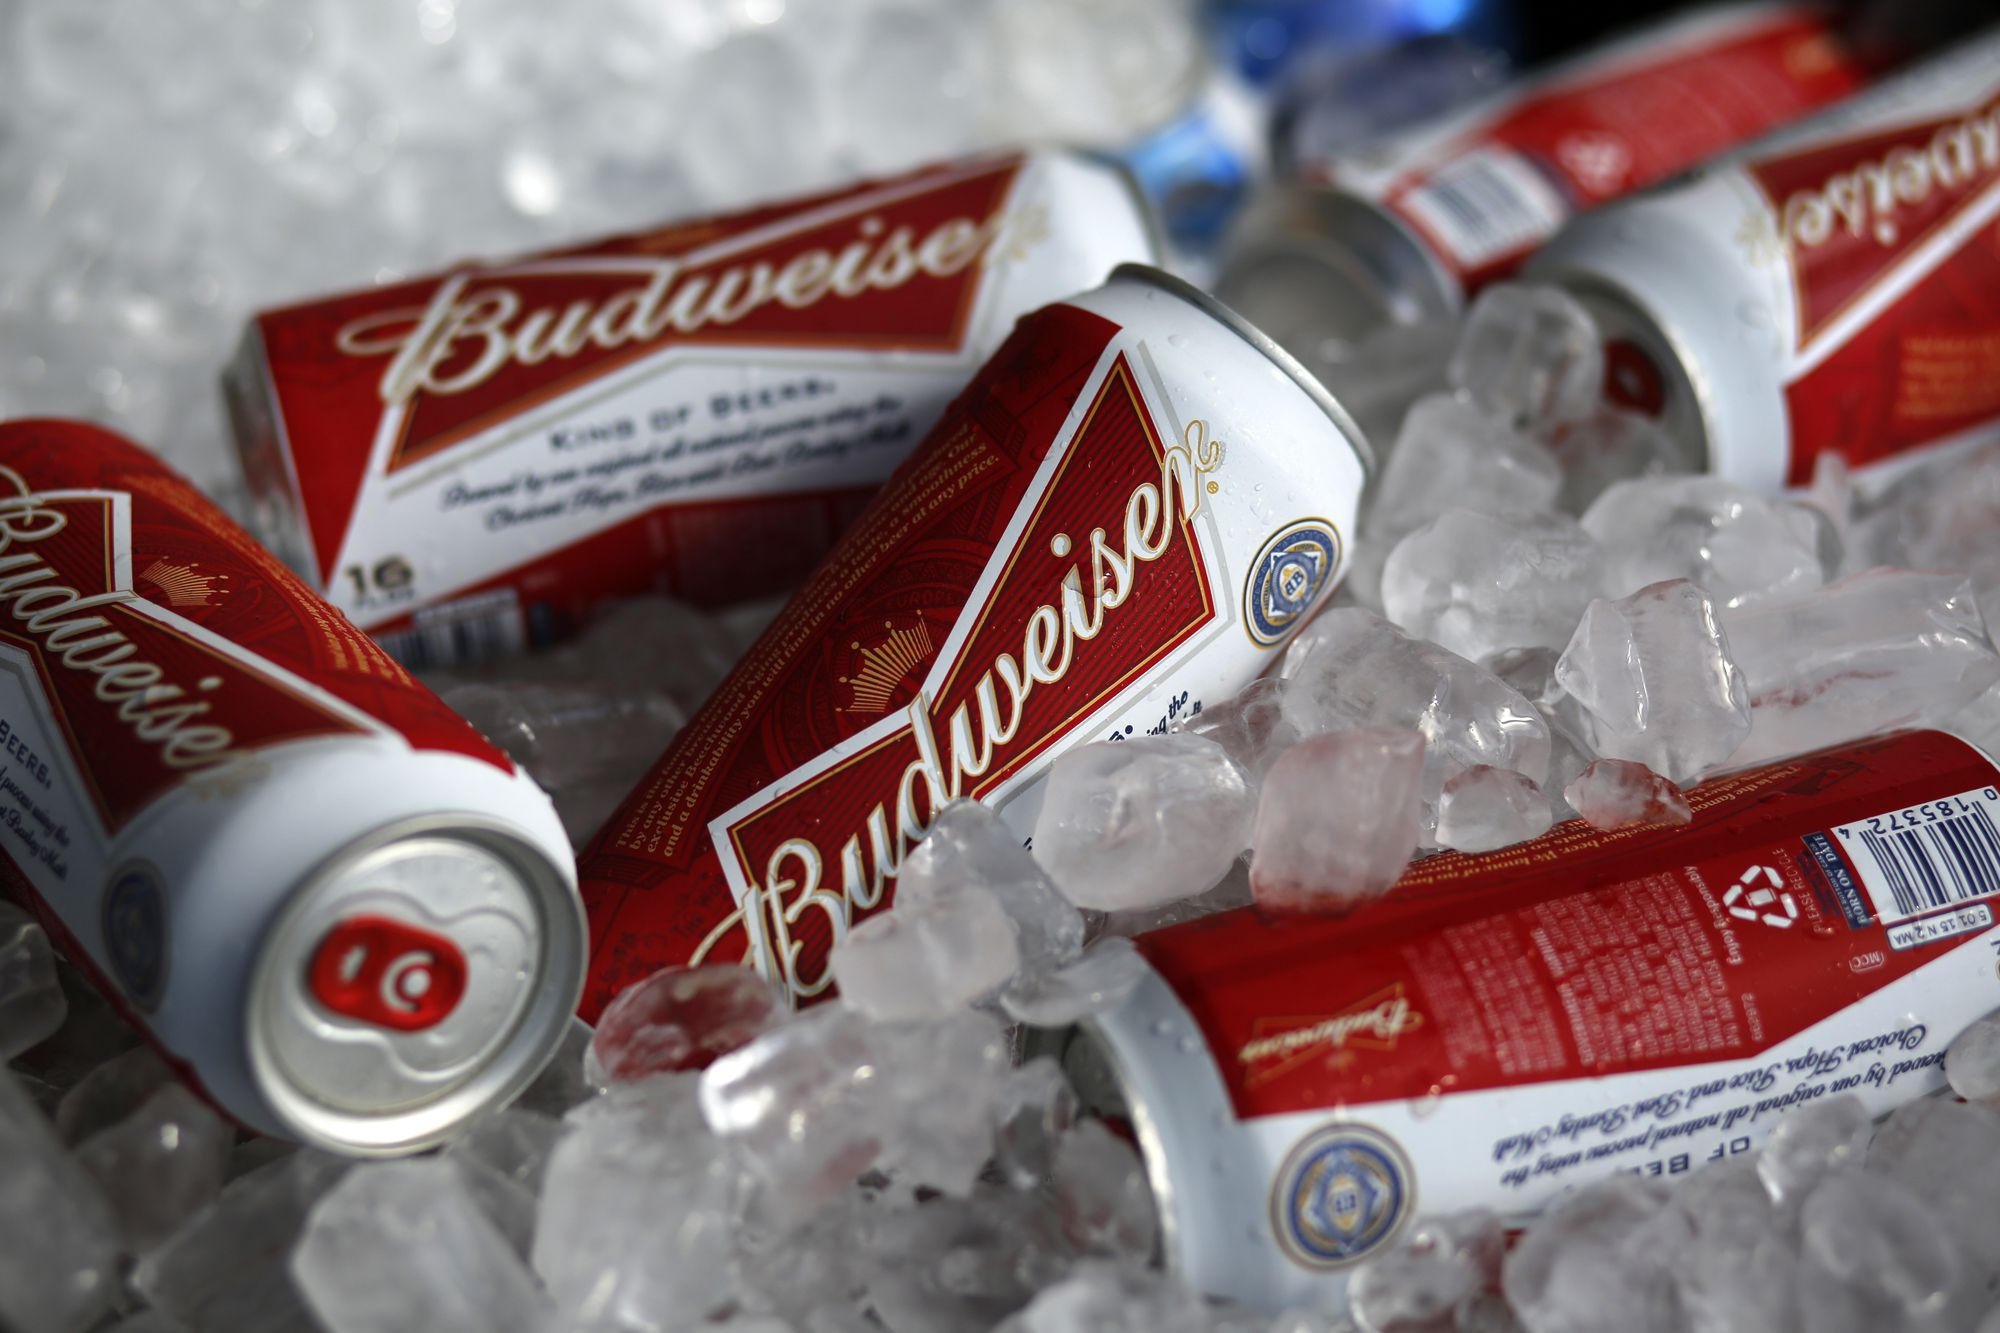 Bars and packies got free equipment to push Budweiser, state